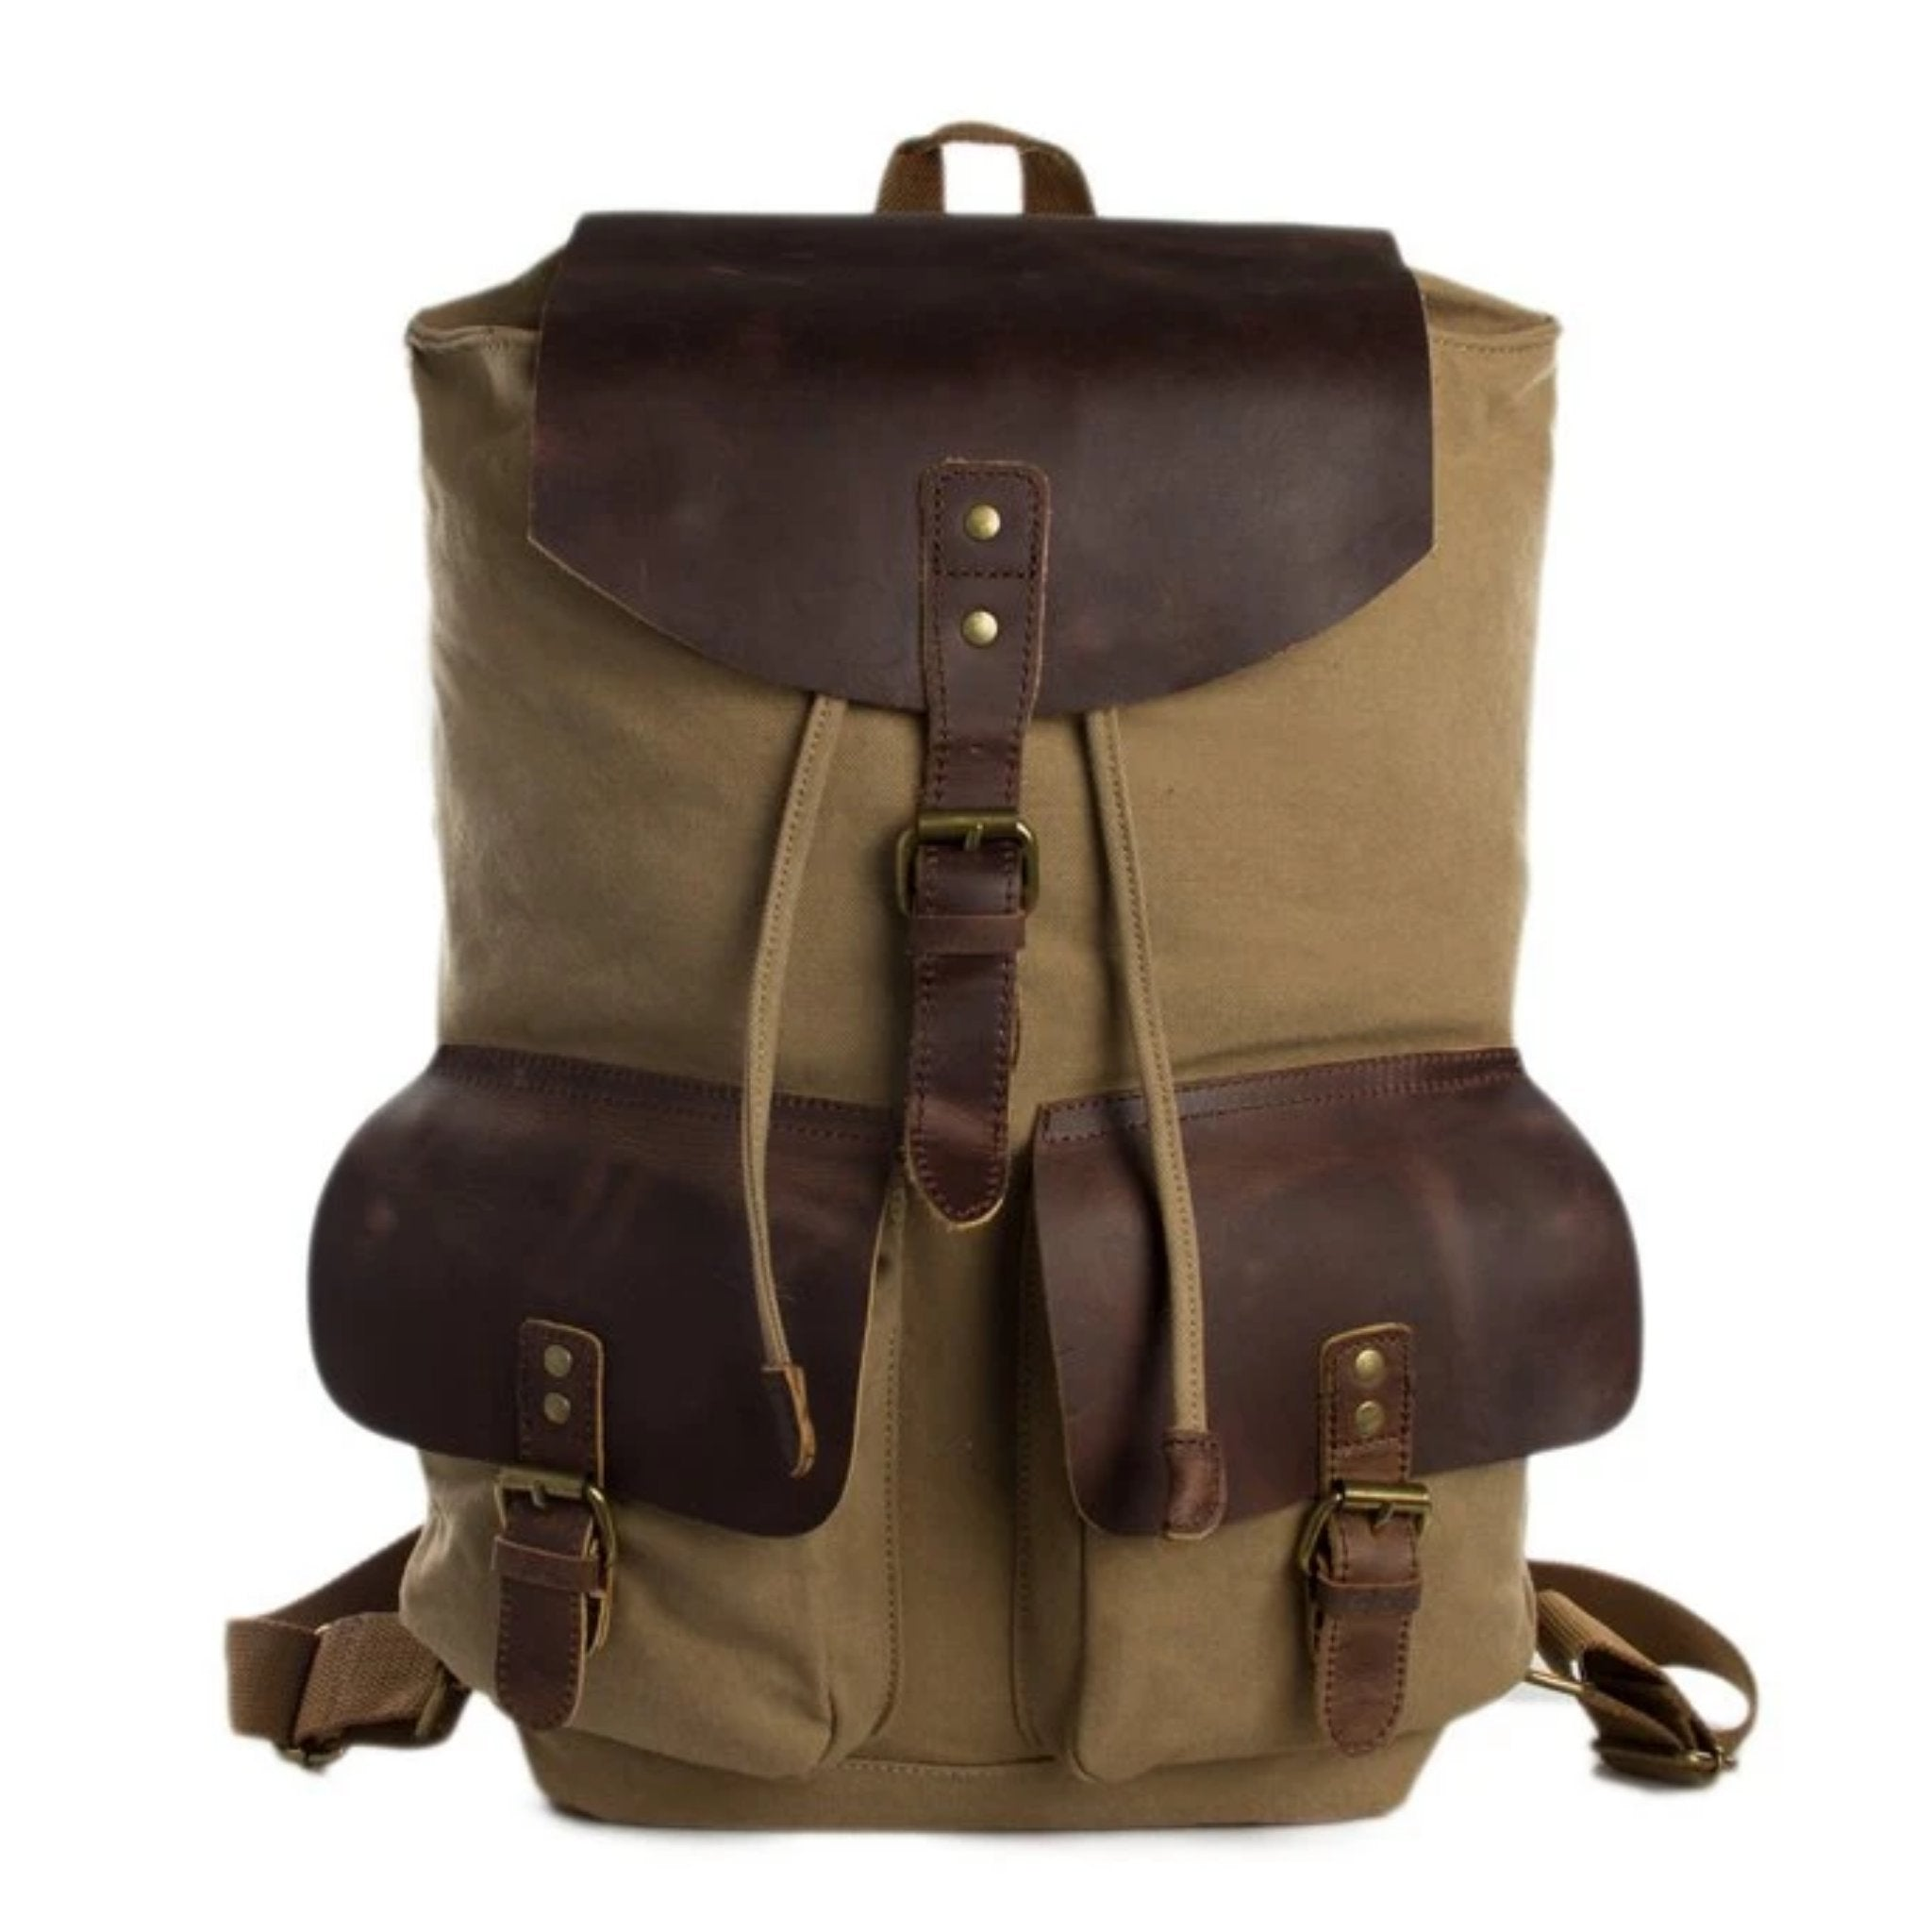 Waxed Canvas and Leather Backpack with Double Pockets - Khaki - Blue Sebe